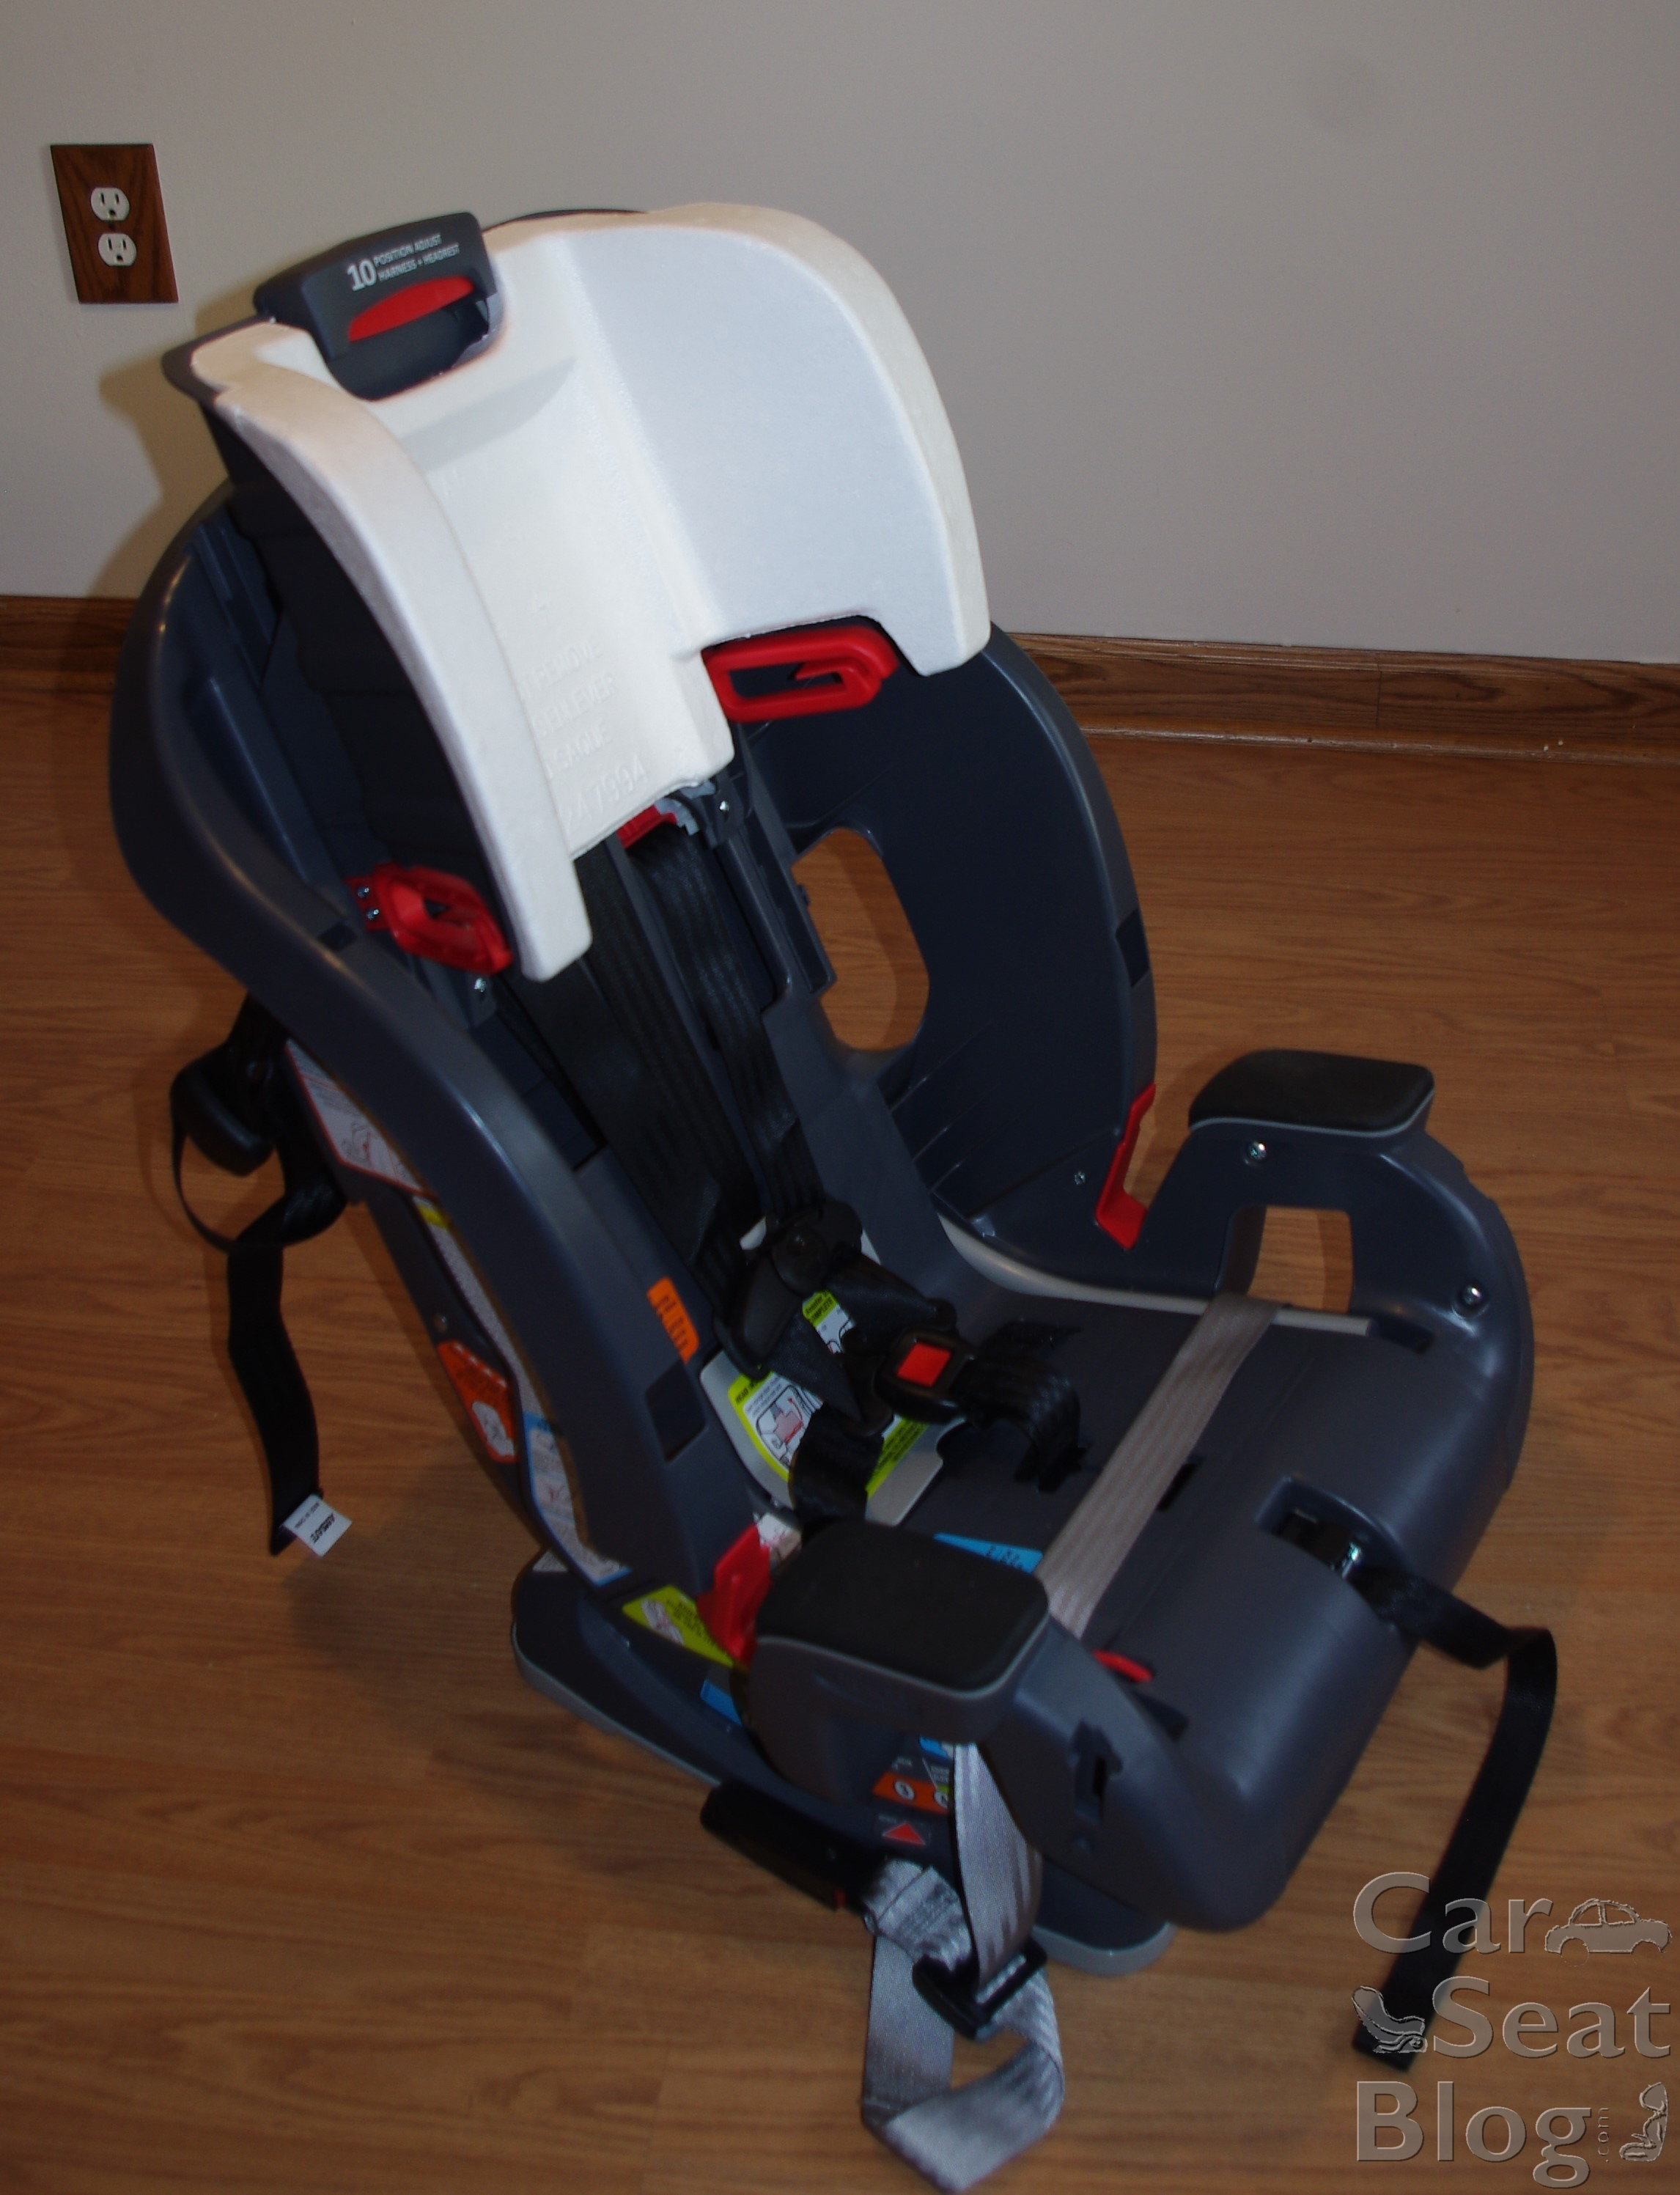 Infant Car Seat Price Graco Milestone All-In-One Carseat Review: Does it Live Up to the Name ...